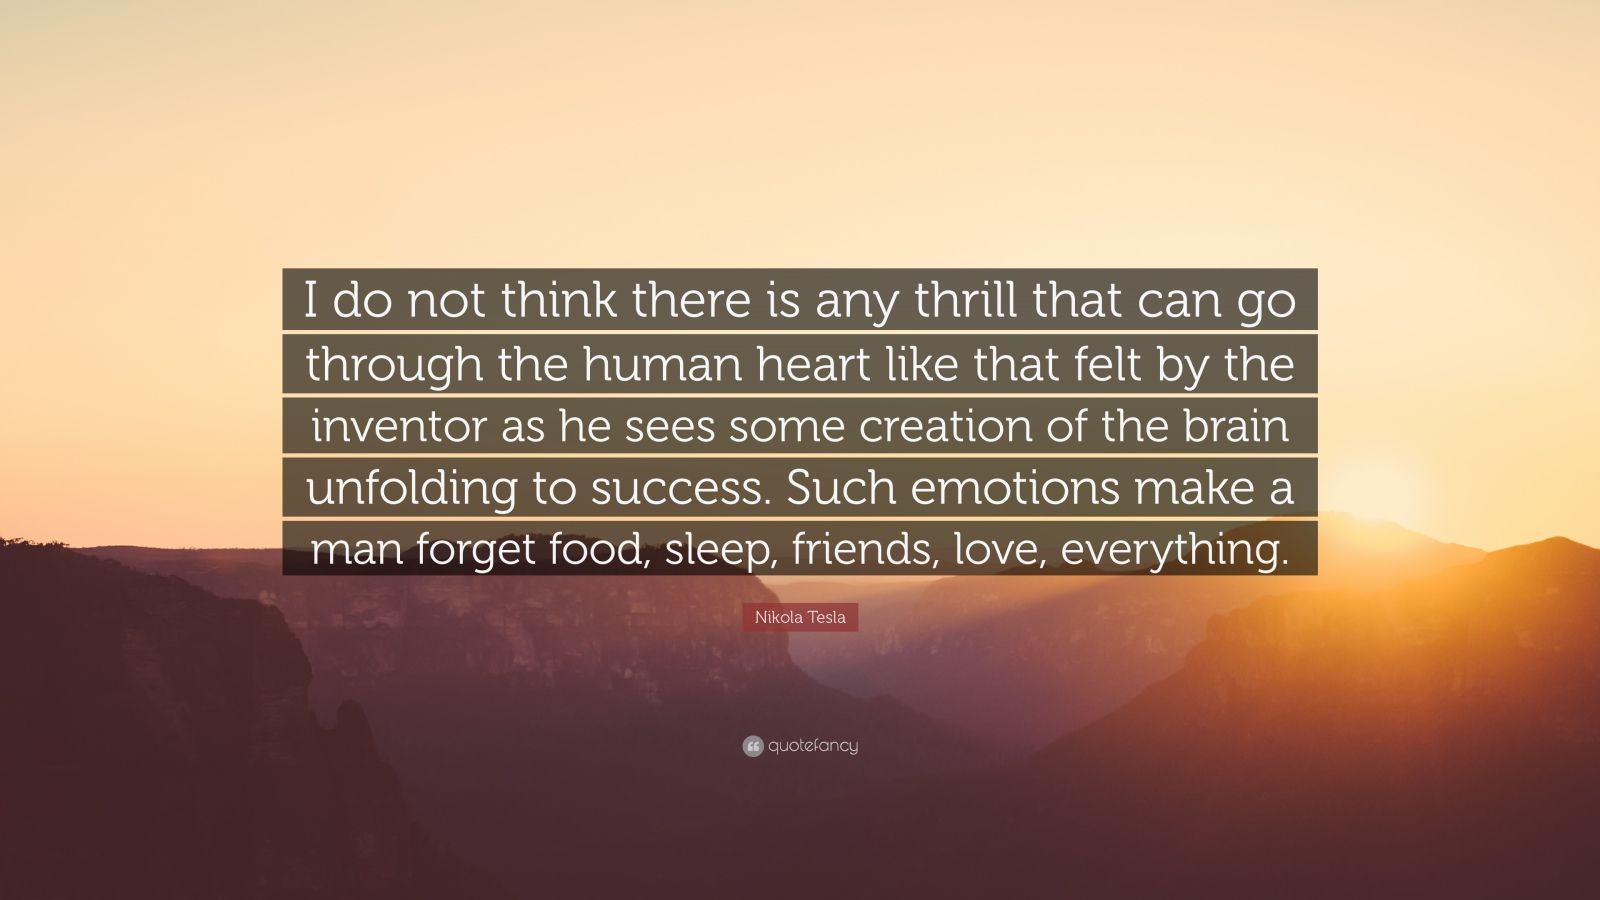 nikola tesla quote i do not think there is any thrill